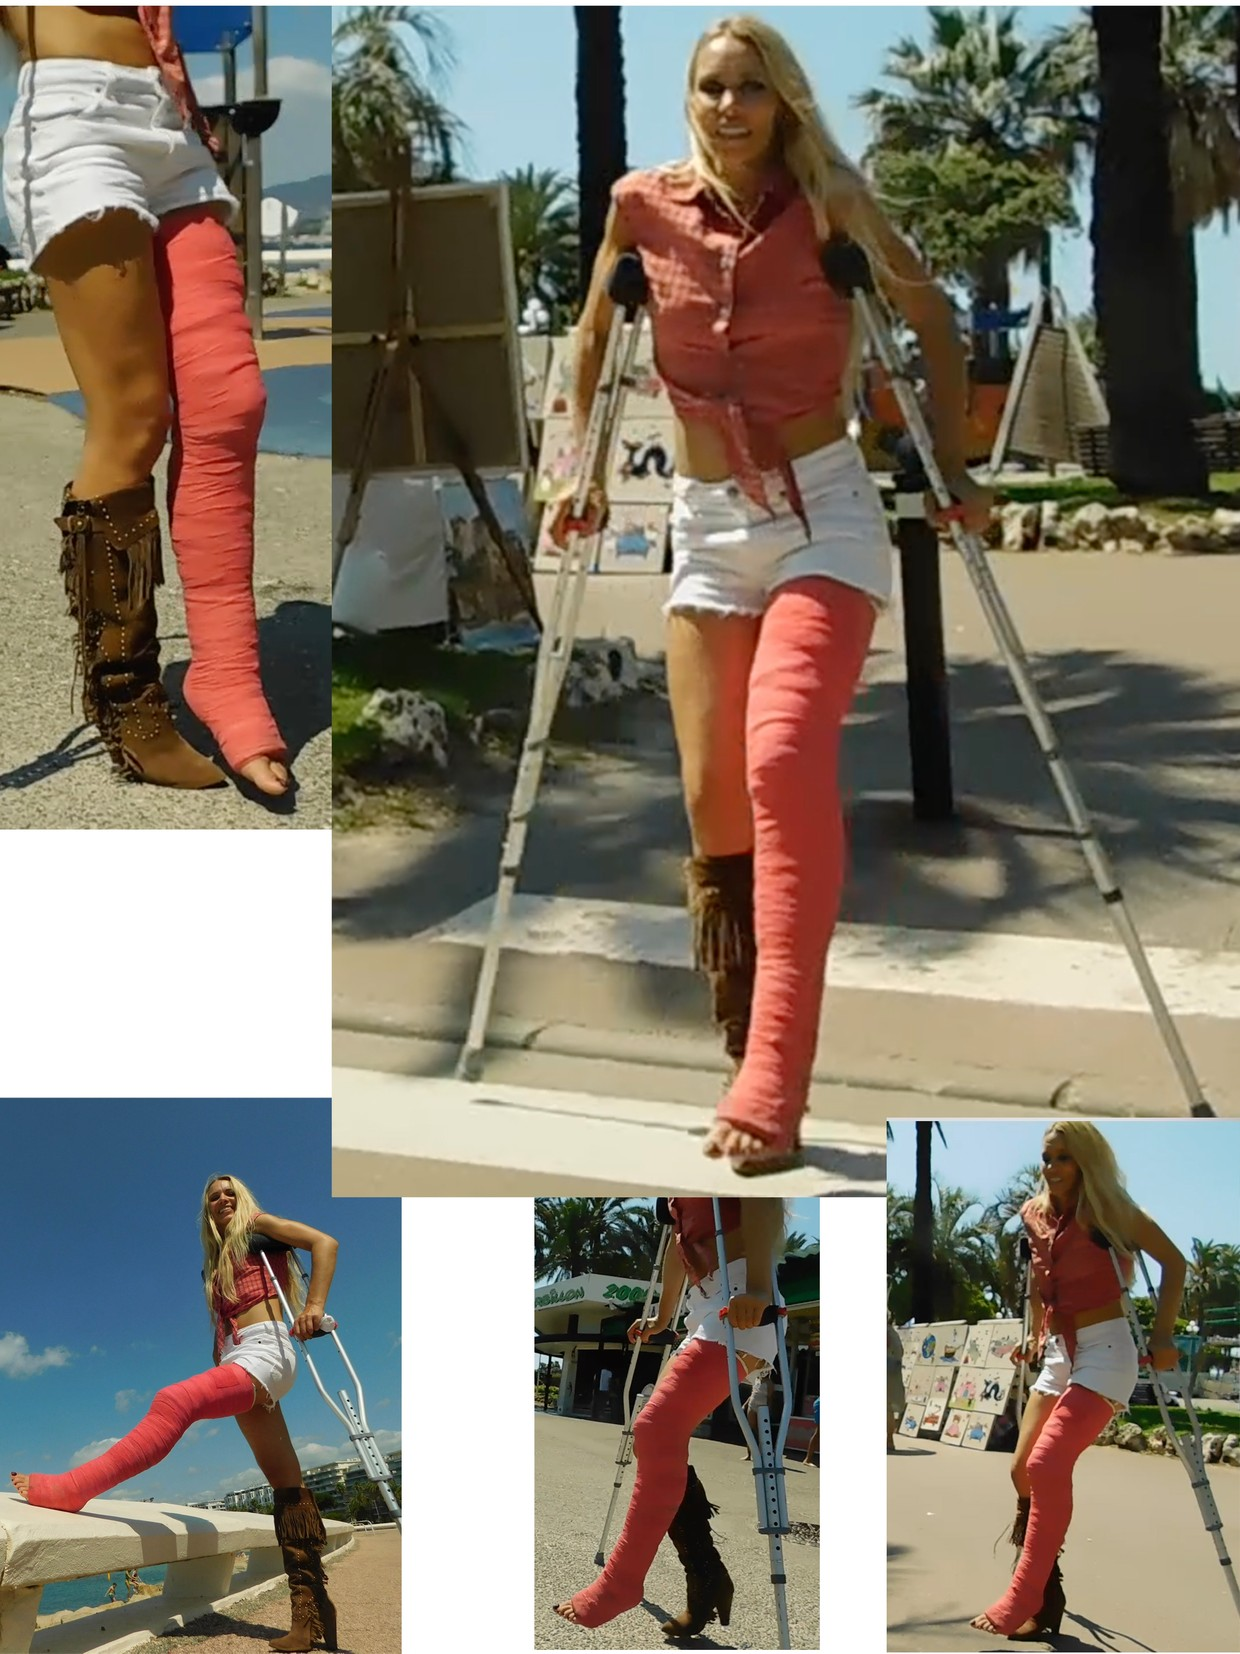 CastLinda LLC #89 - Linda on crutches with a longleg cast on her left leg - wrapped with red bandages..